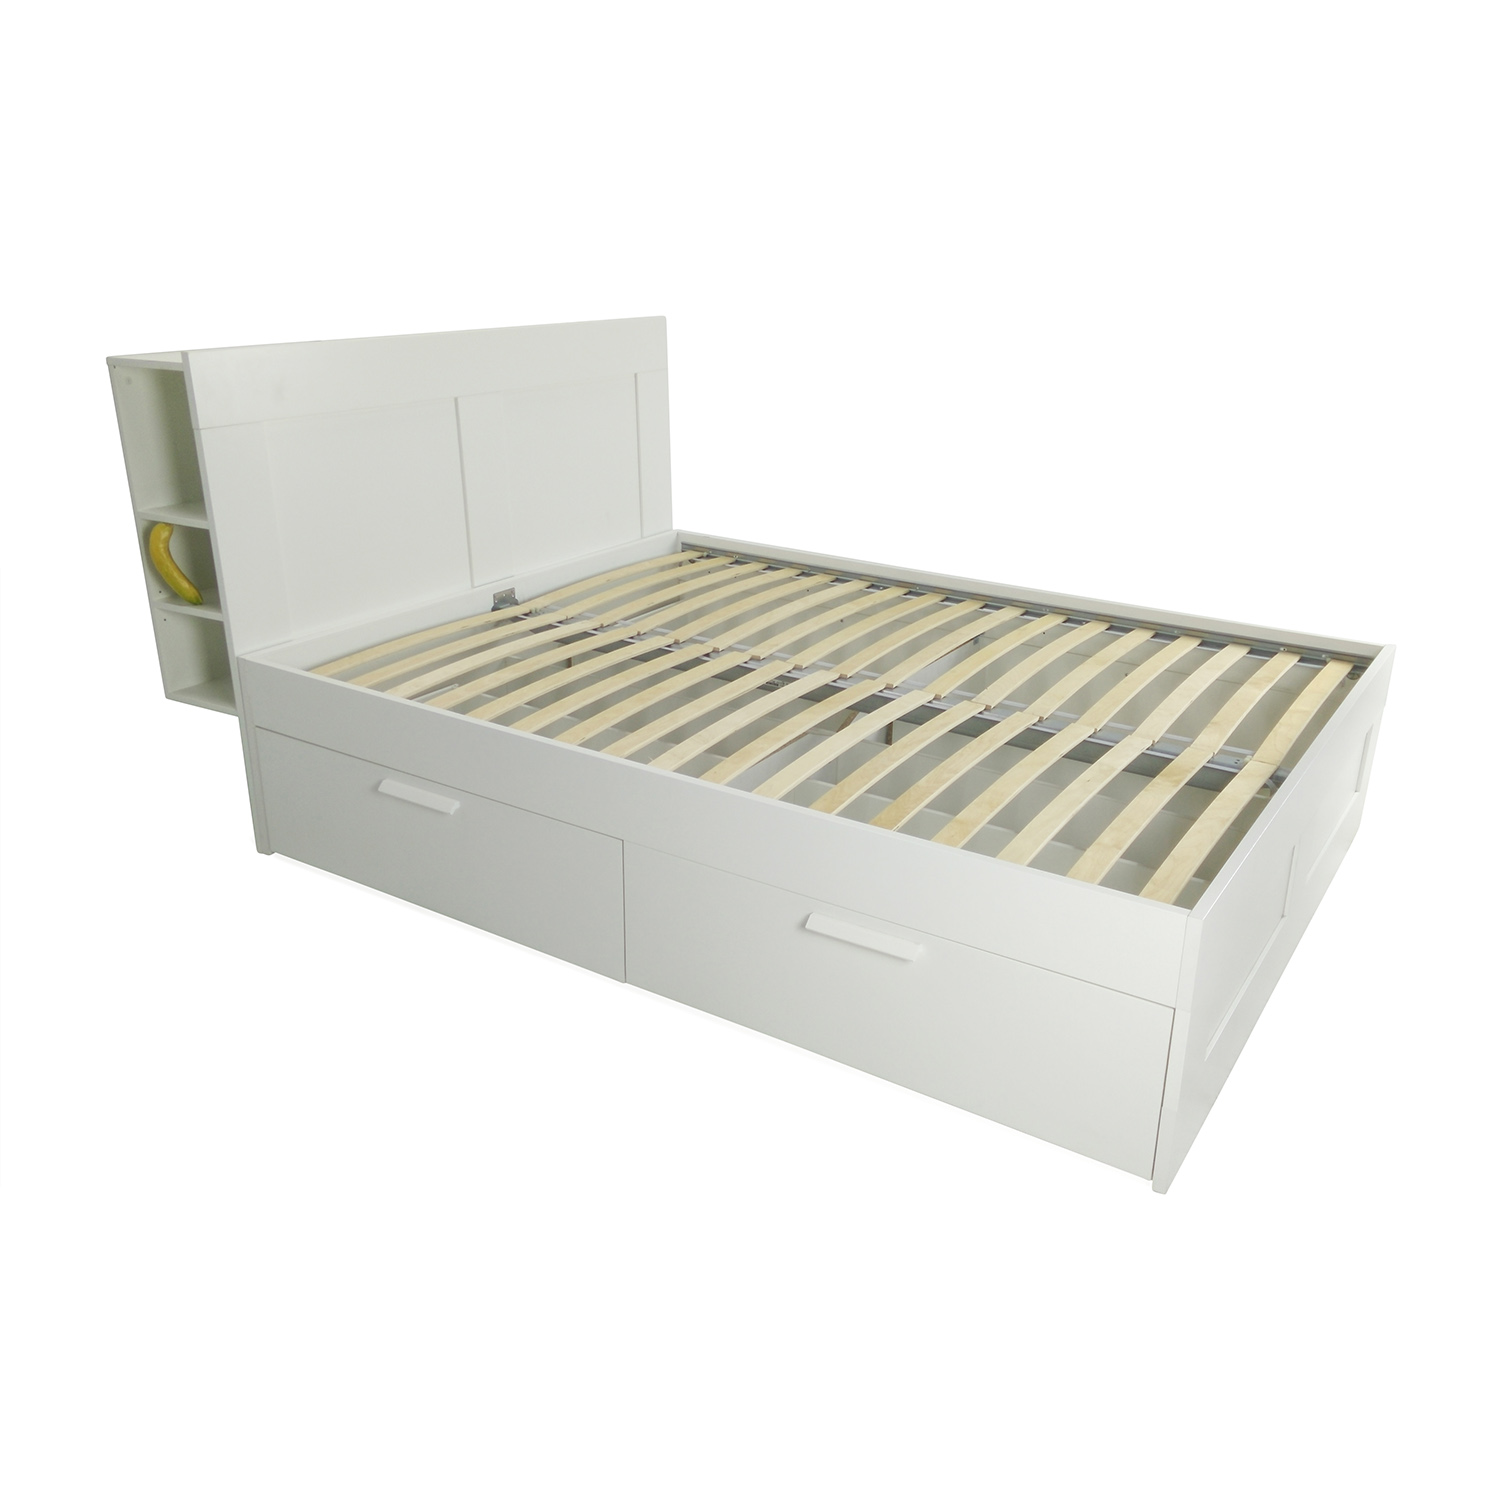 57 off ikea ikea queen size bed frame beds for Ikea mattress frame